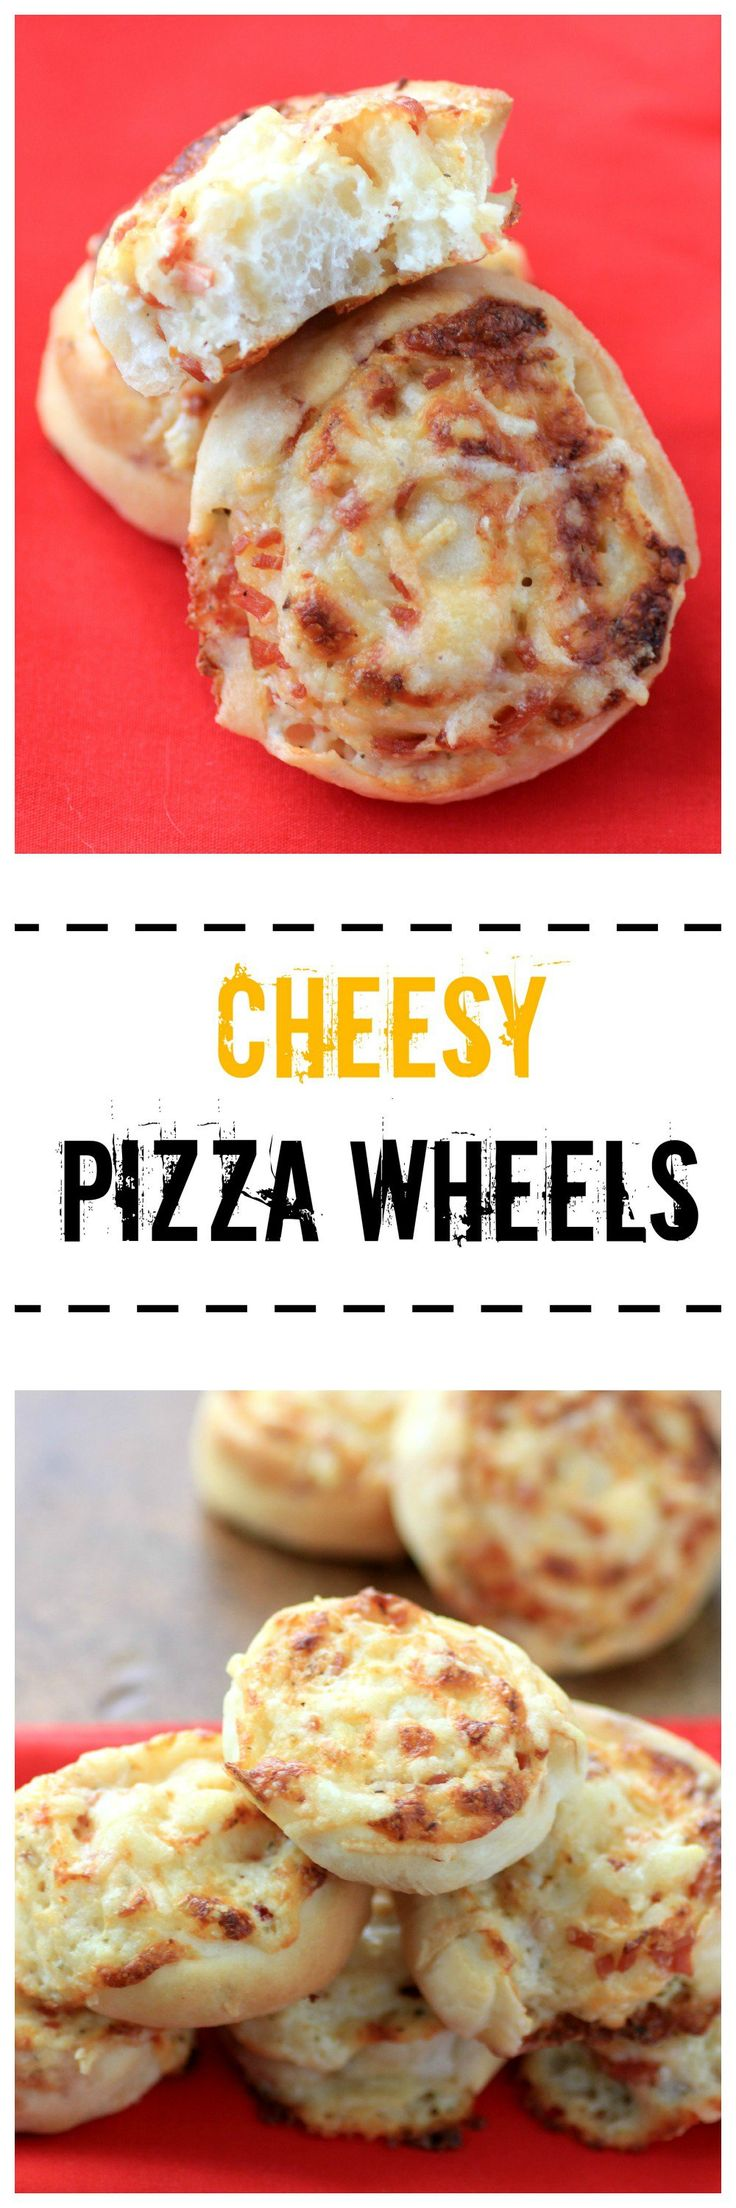 Cheesy Pizza Wheels Recipe by Noshing With The Nolands - pizza for one, in bite sized fun! Great for an after school snack, too. #BreadBakers